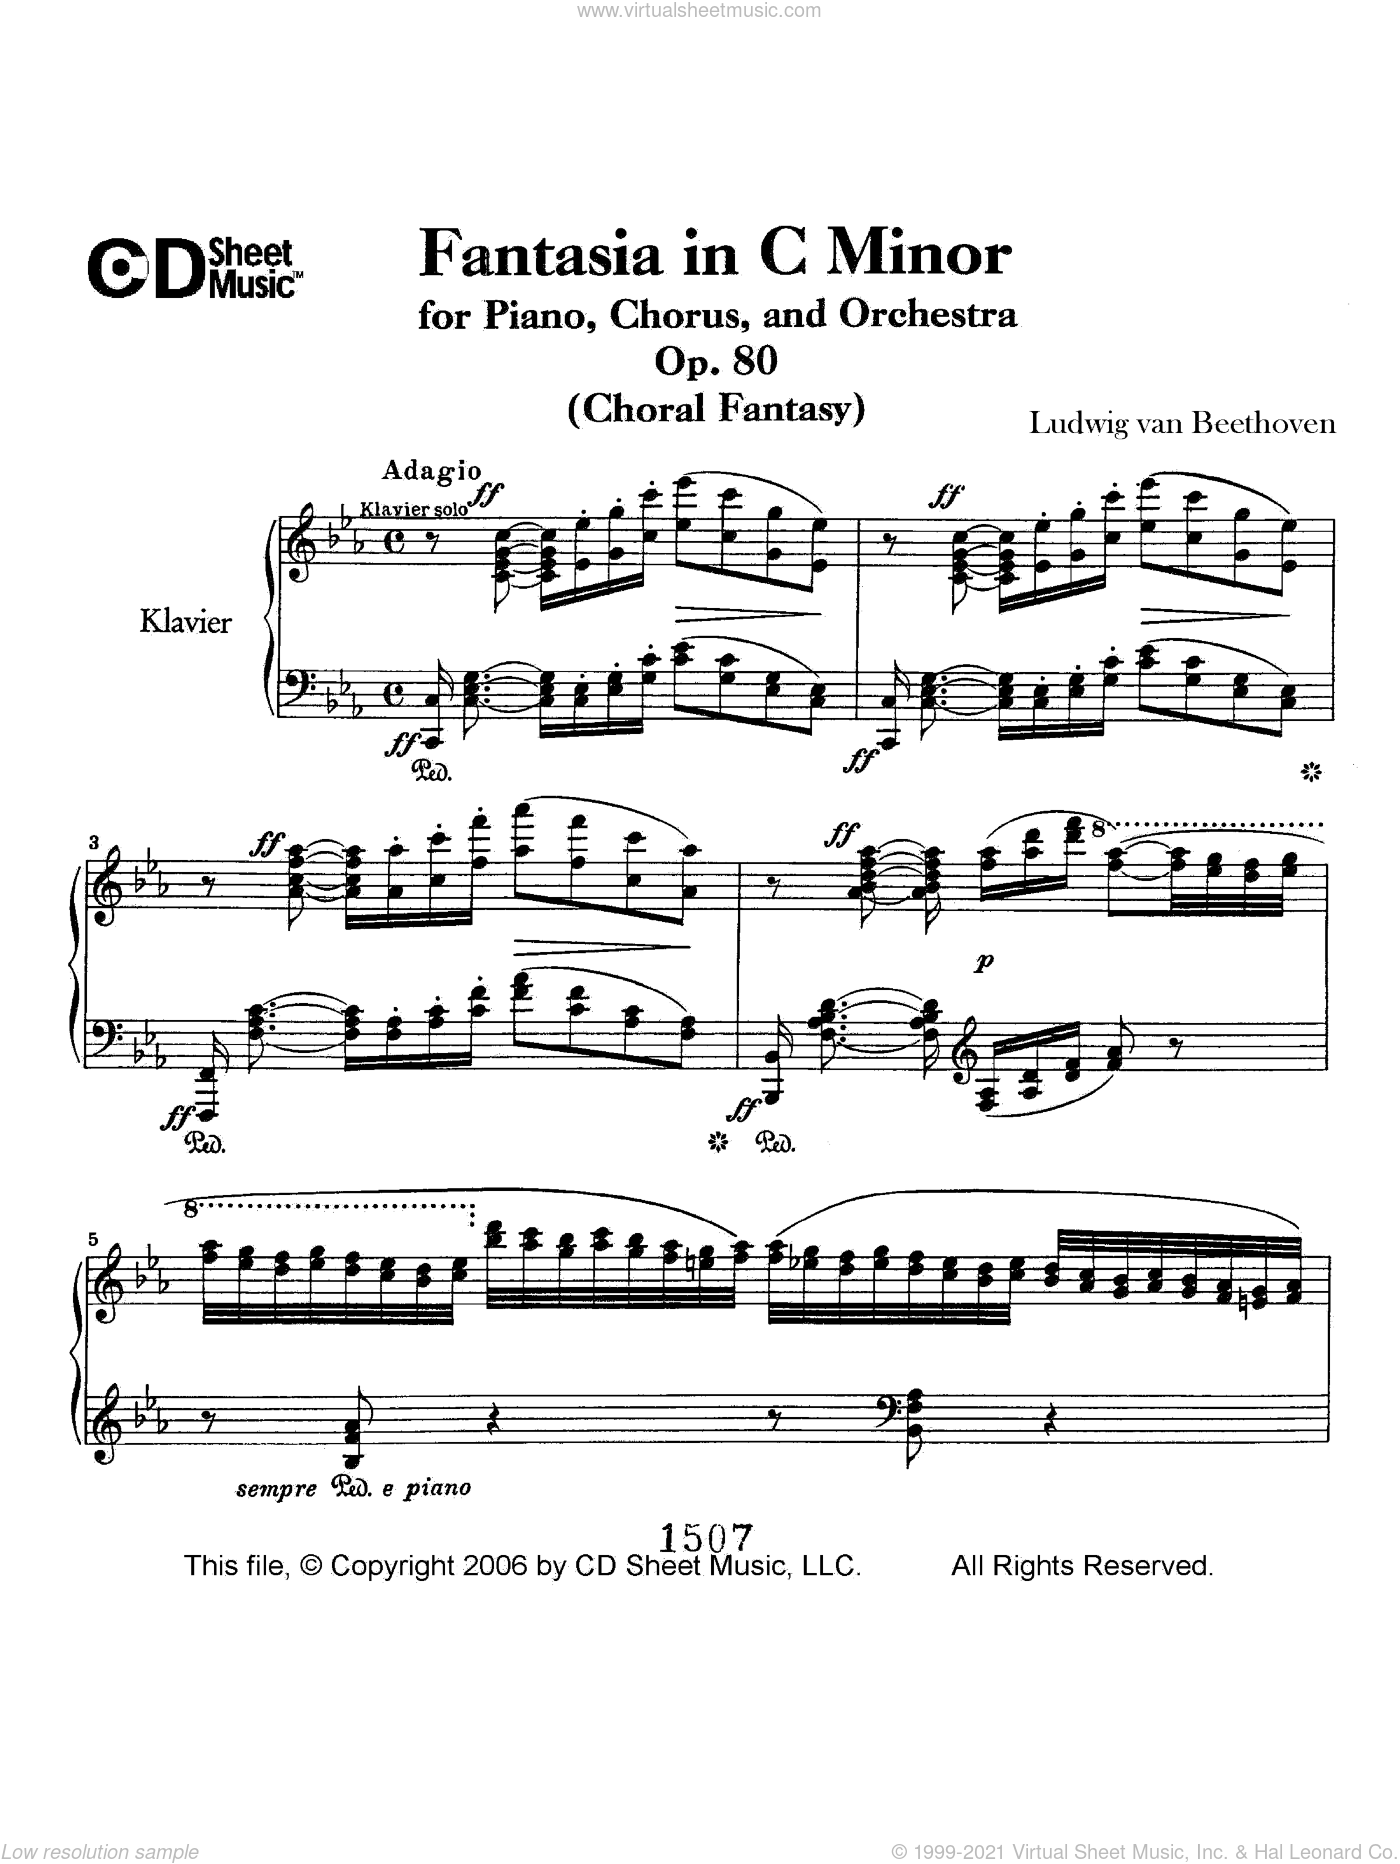 Fantasia In C Minor For Piano, Chorus, And Orchestra (choral Fantasy), Op. 80 sheet music for piano solo by Ludwig van Beethoven